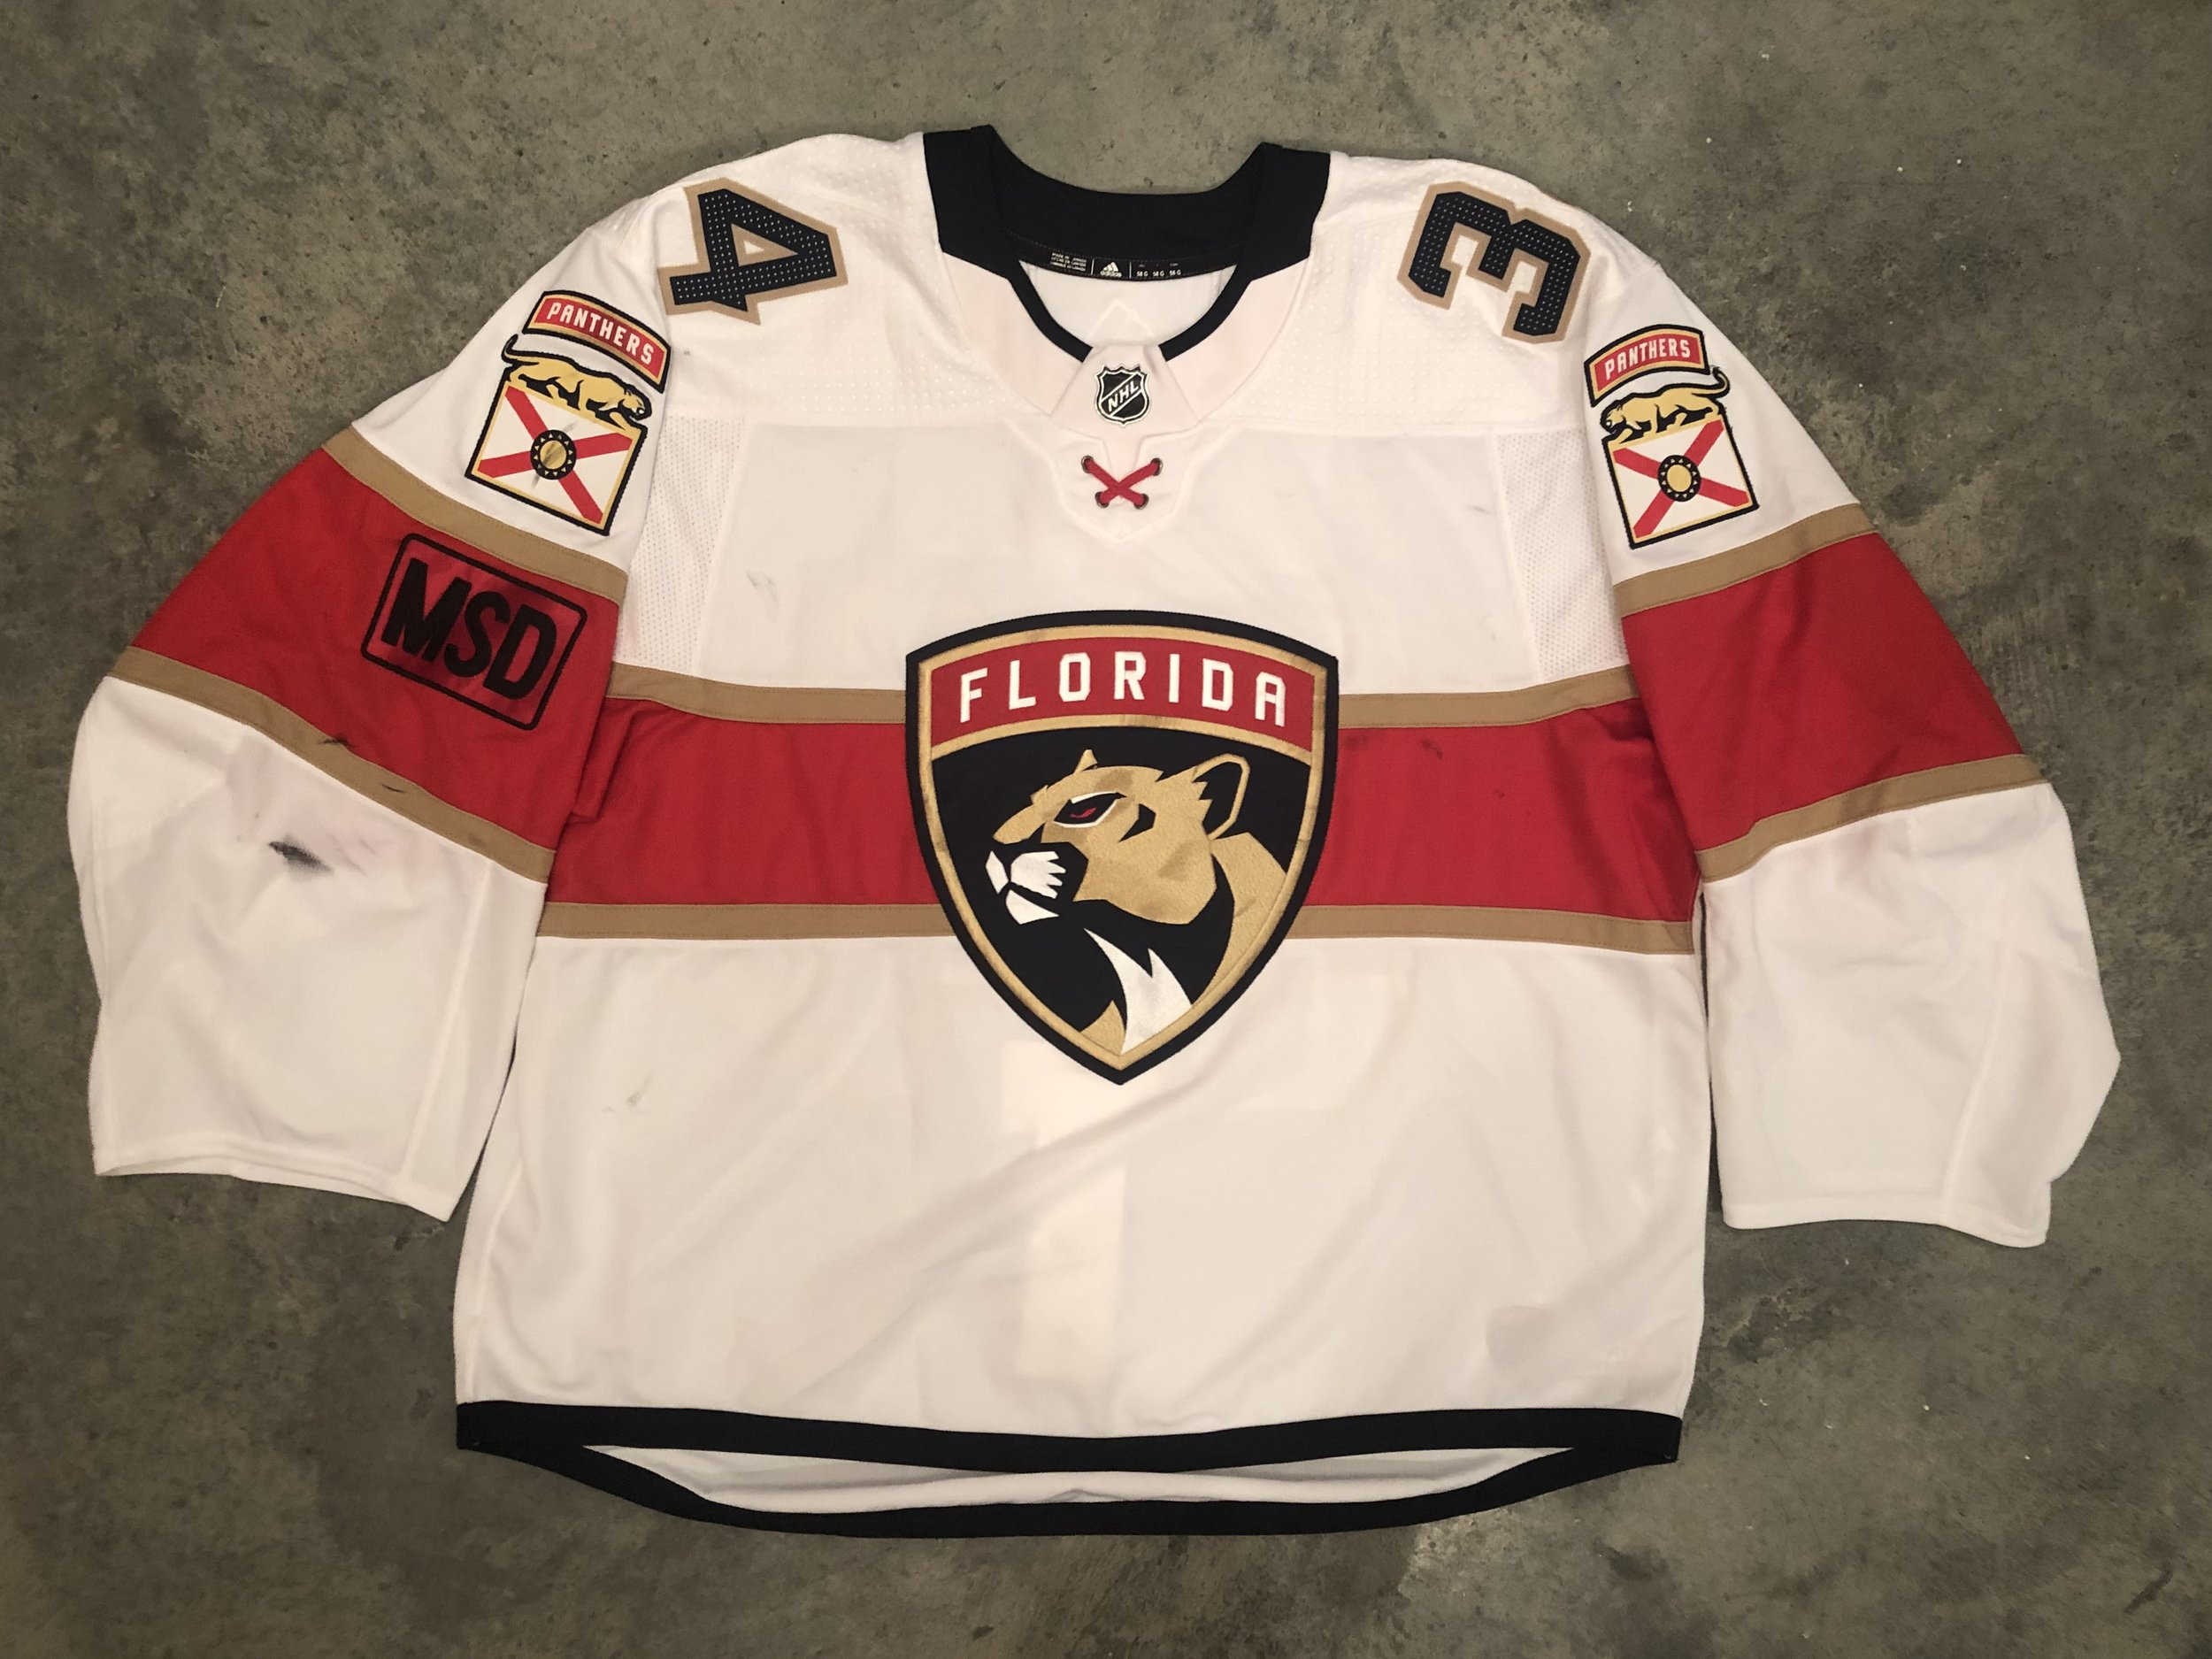 2017-18 James Reimer game worn road jersey with the MSD - Marjory Stoneman Douglas high school memorial patch